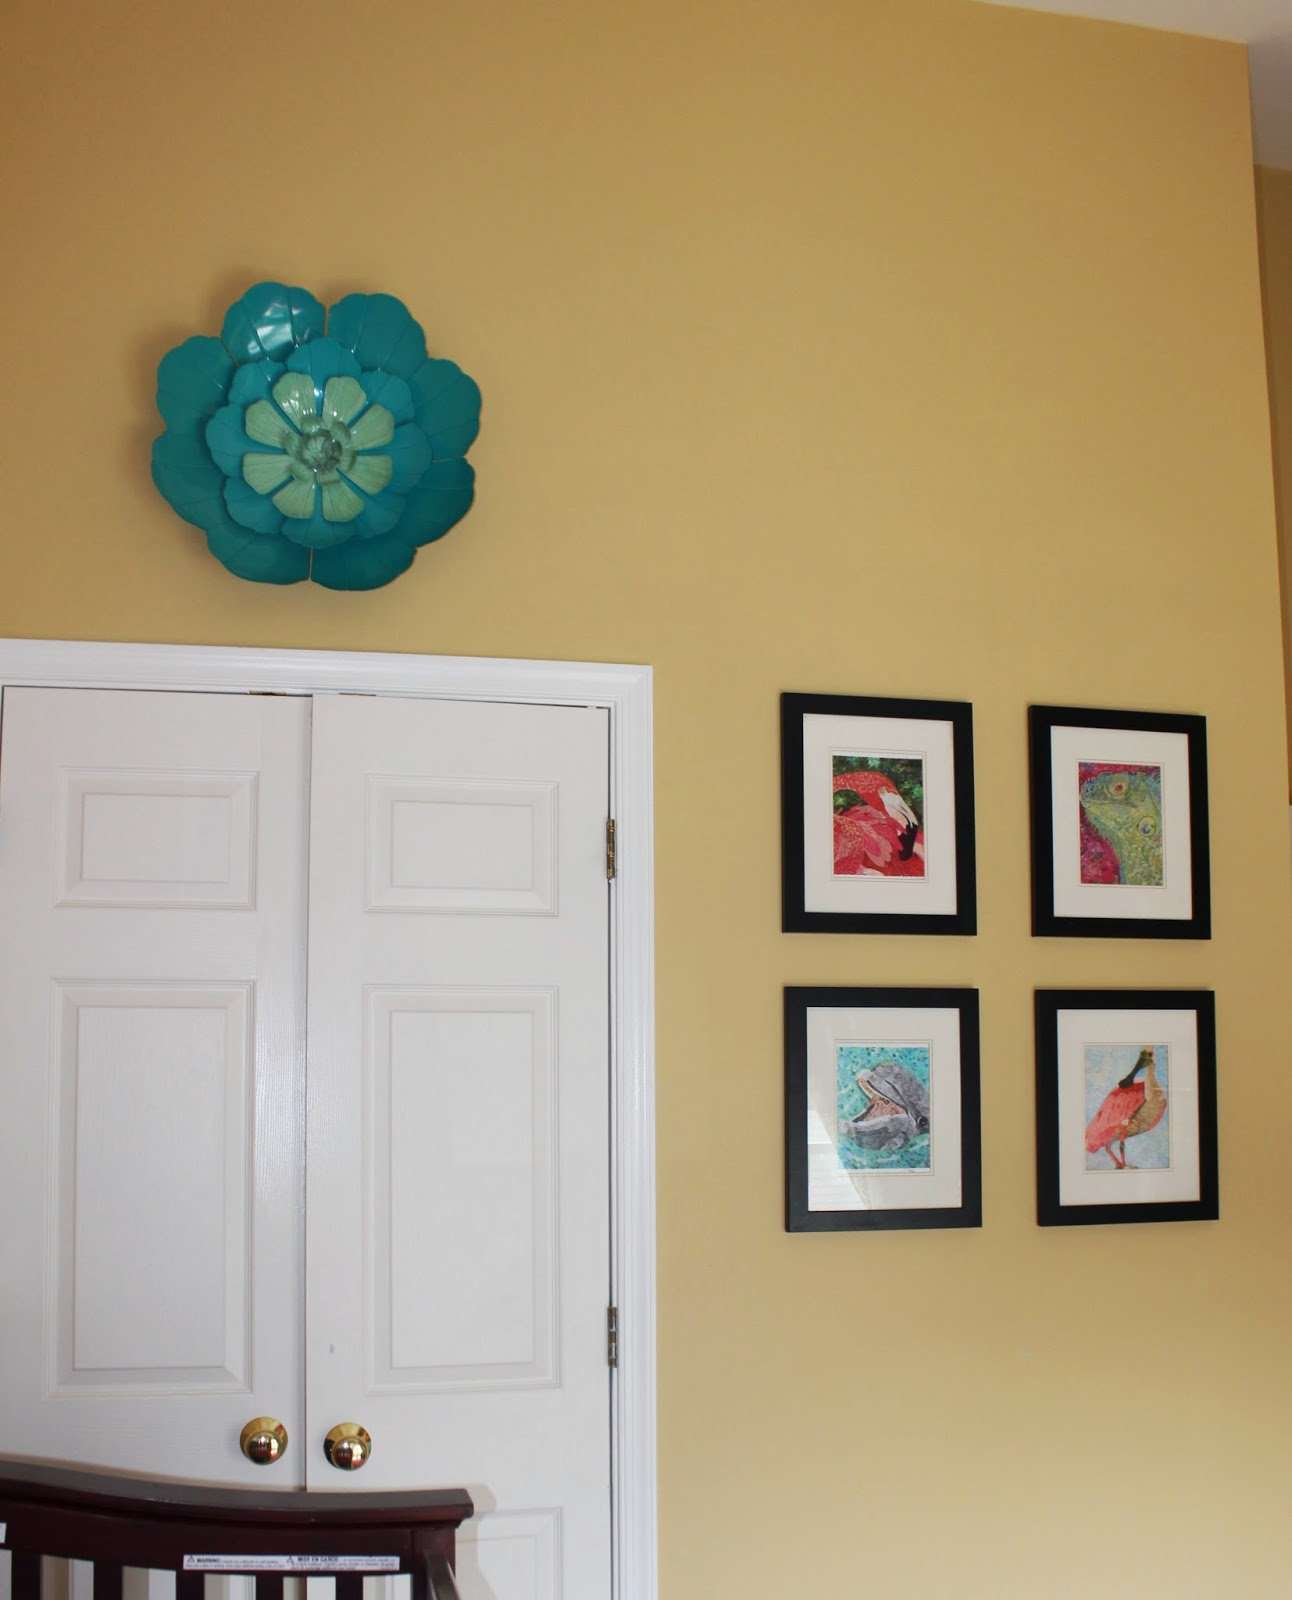 Bliss In Imperfection A Teal and Pink Nursery For The